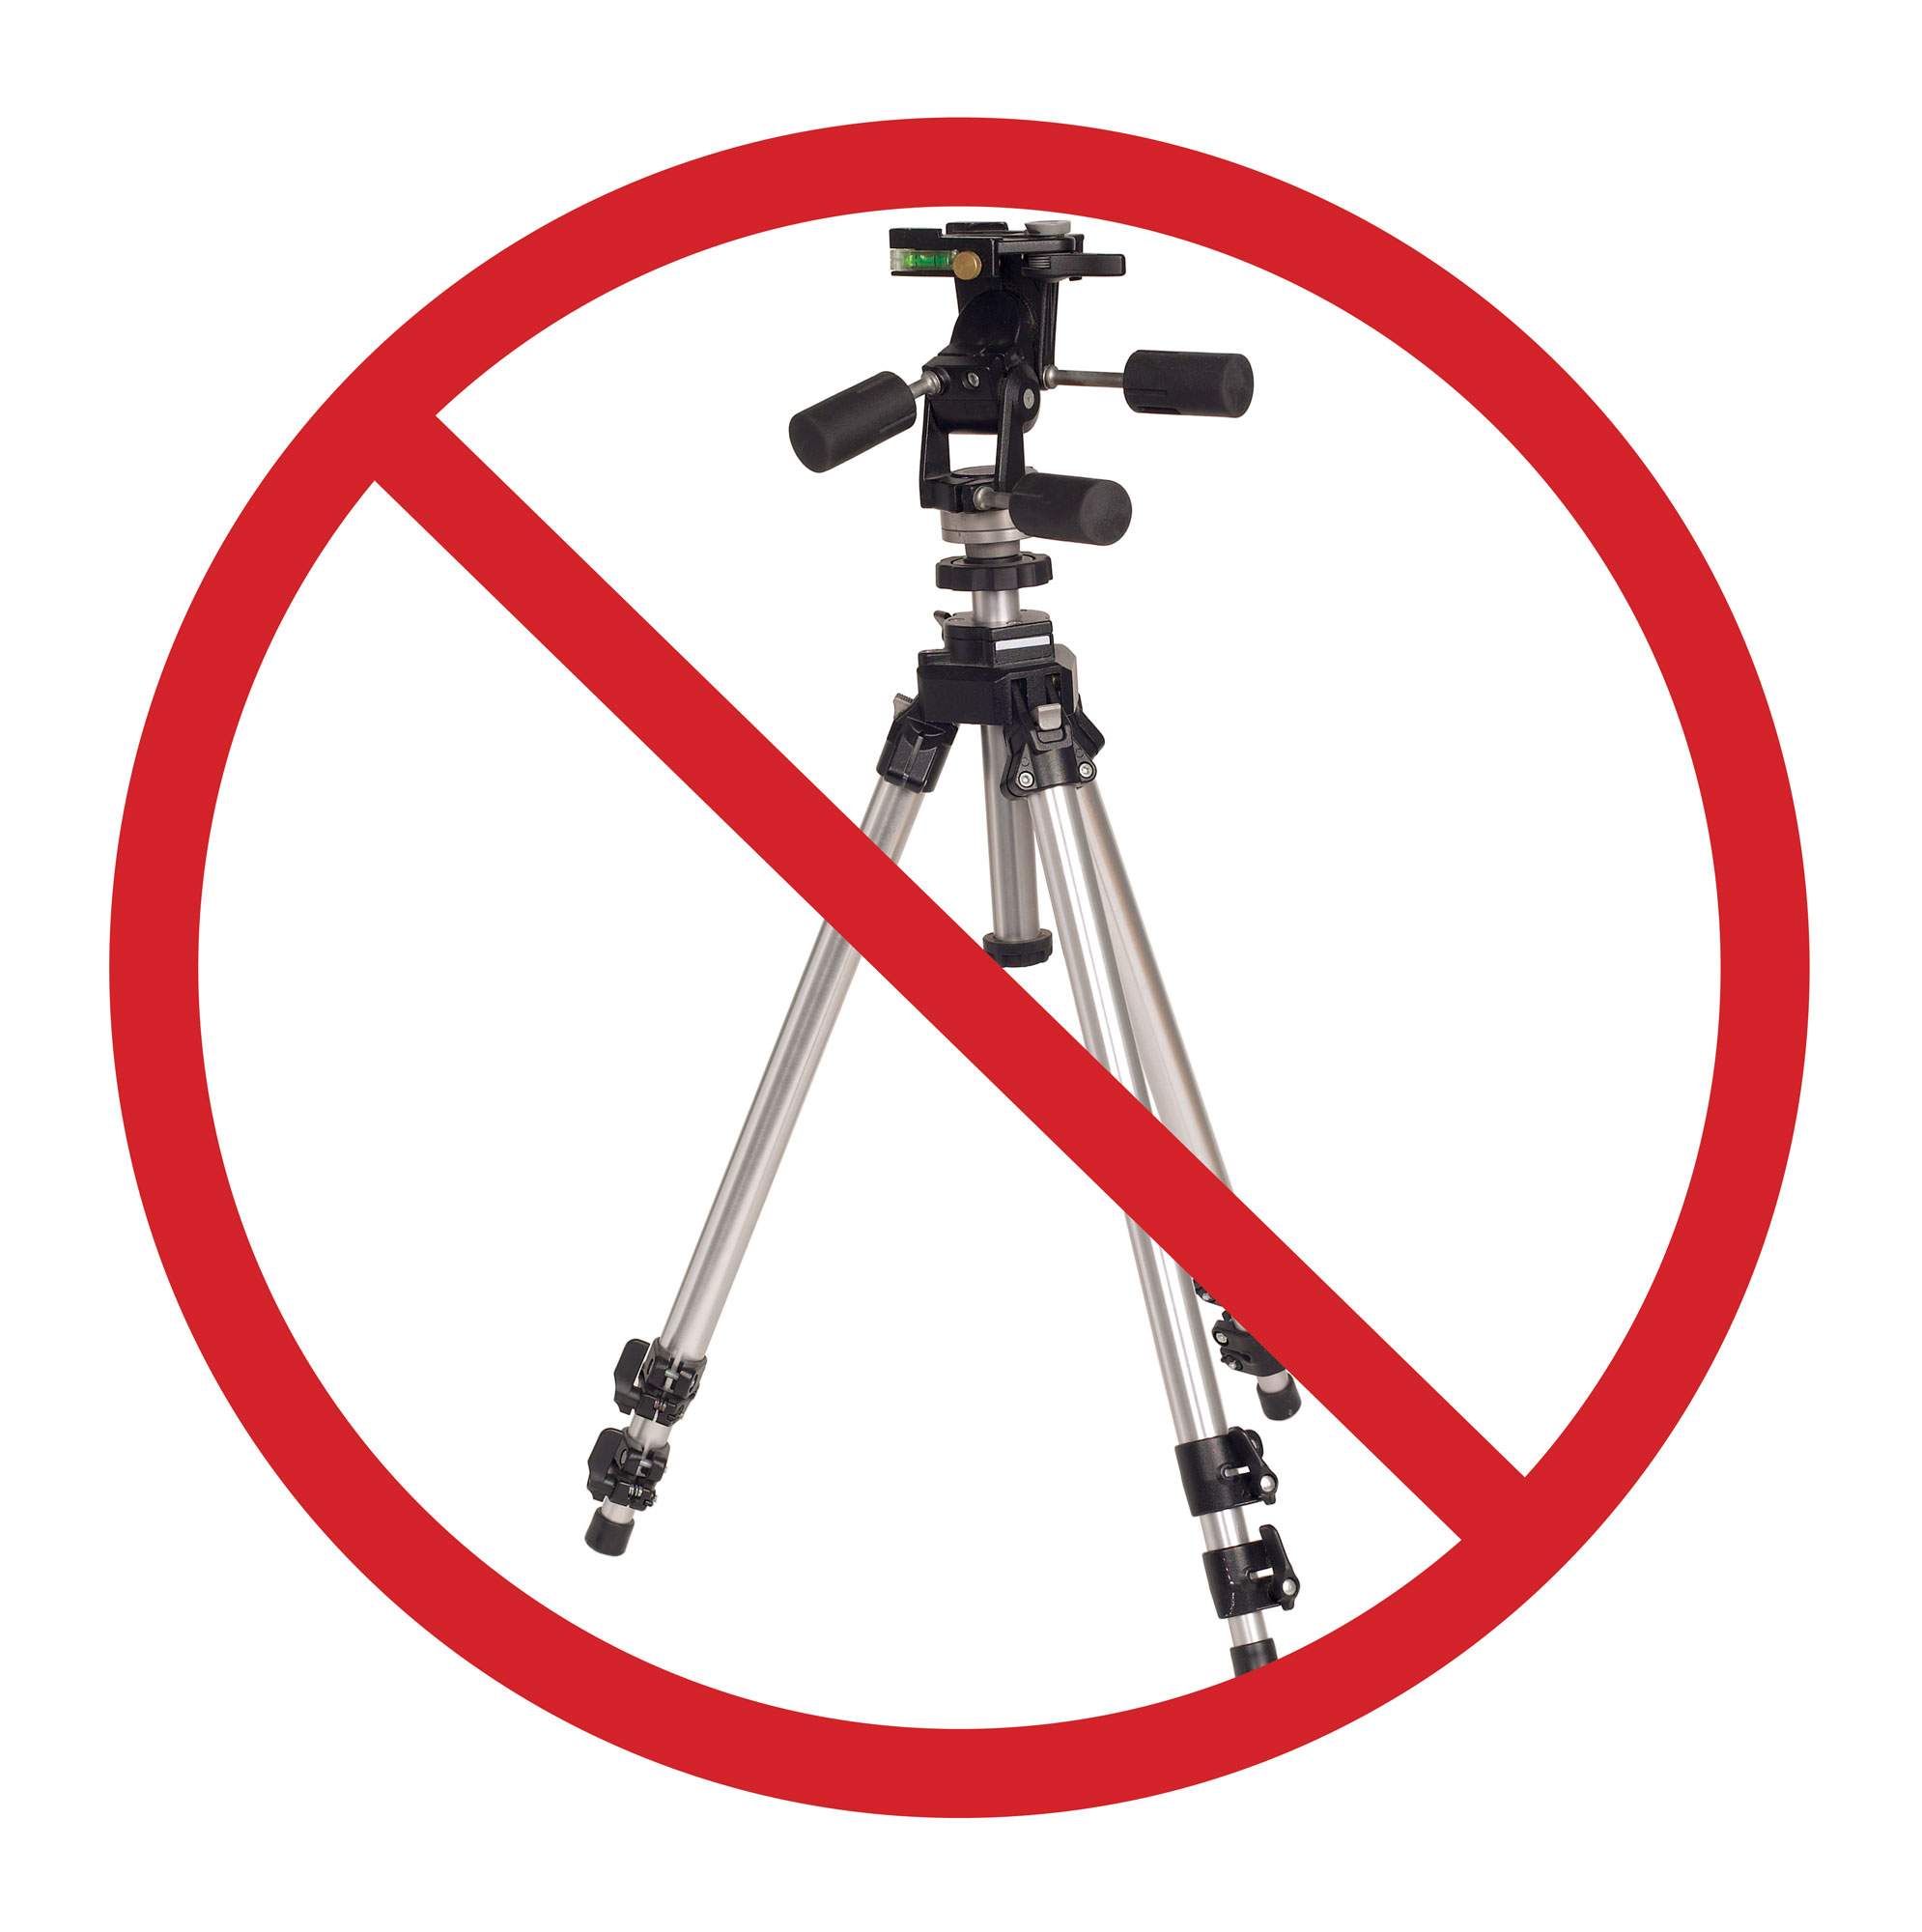 No tripods permitted